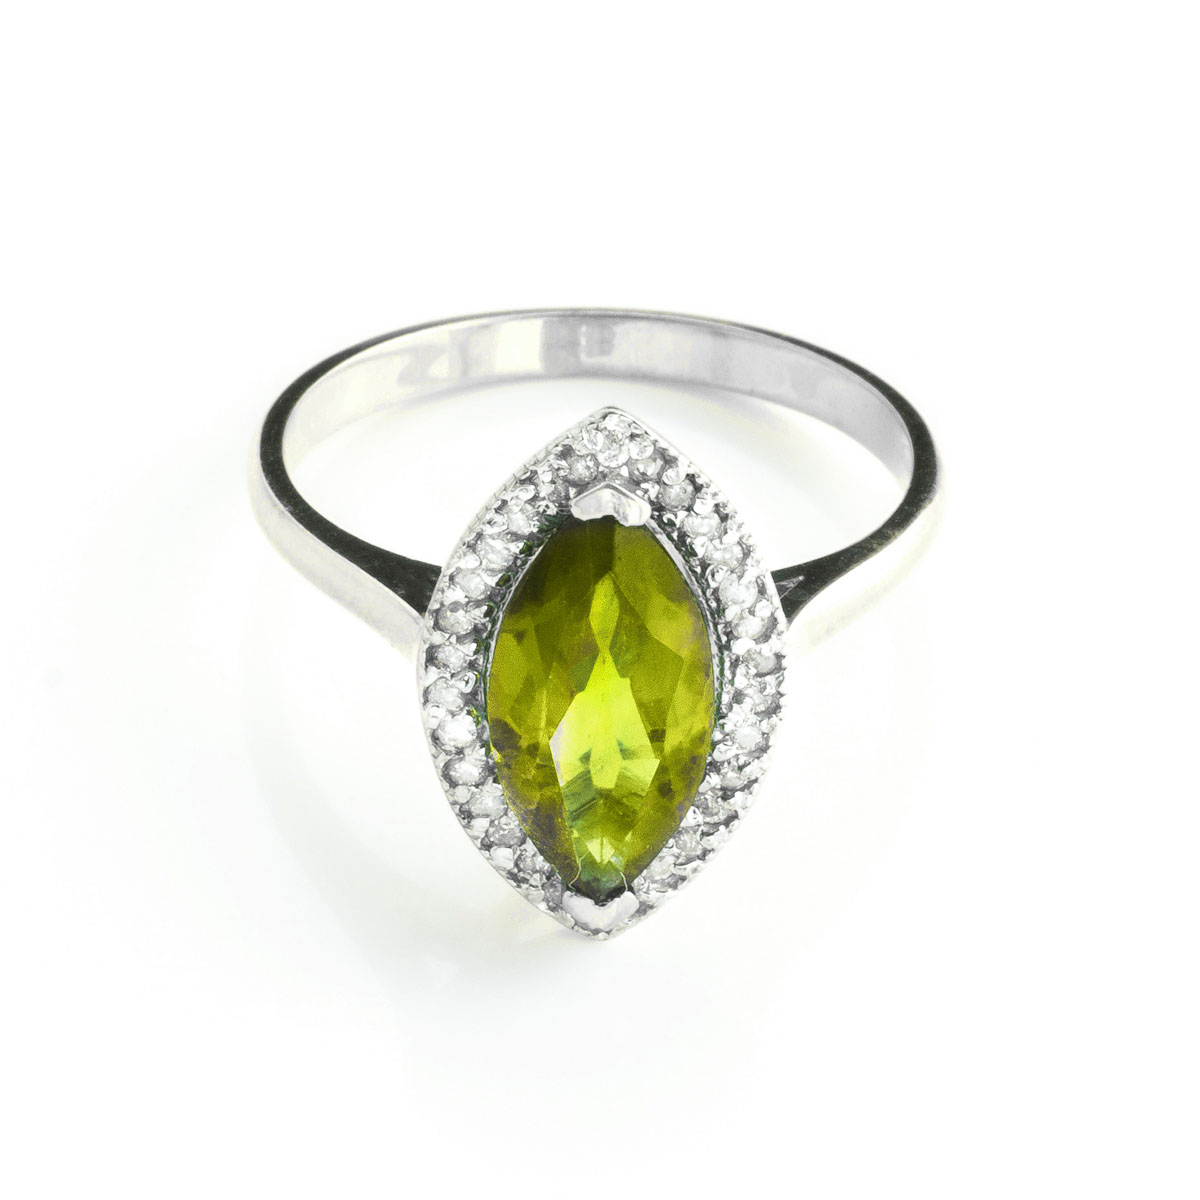 Peridot Halo Ring 2.15 ctw in 18ct White Gold